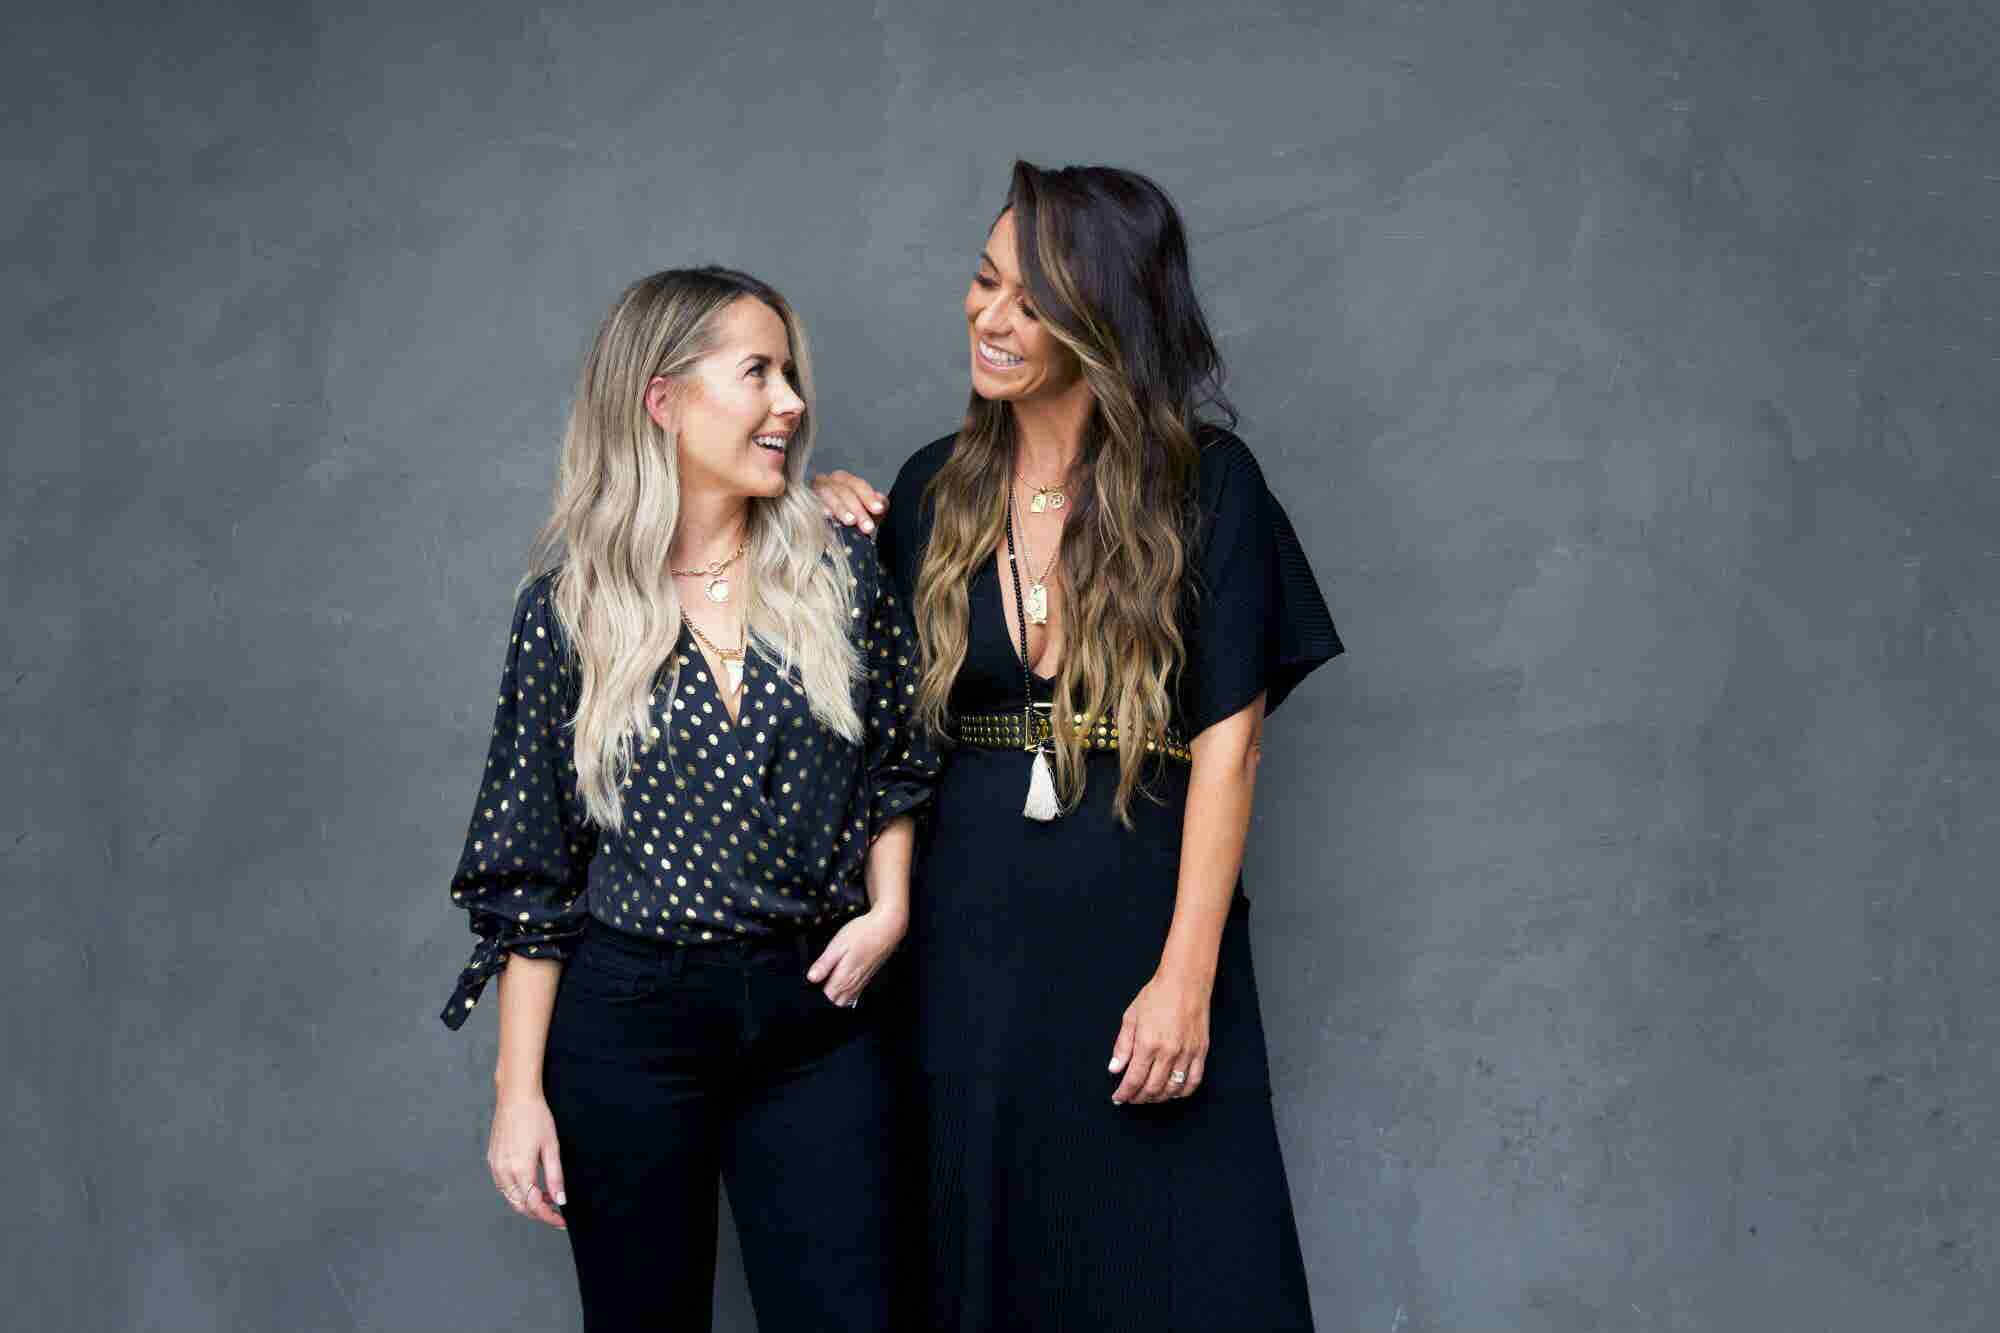 When Their Investor Bailed, These Female Founders Launched Their Company Anyway